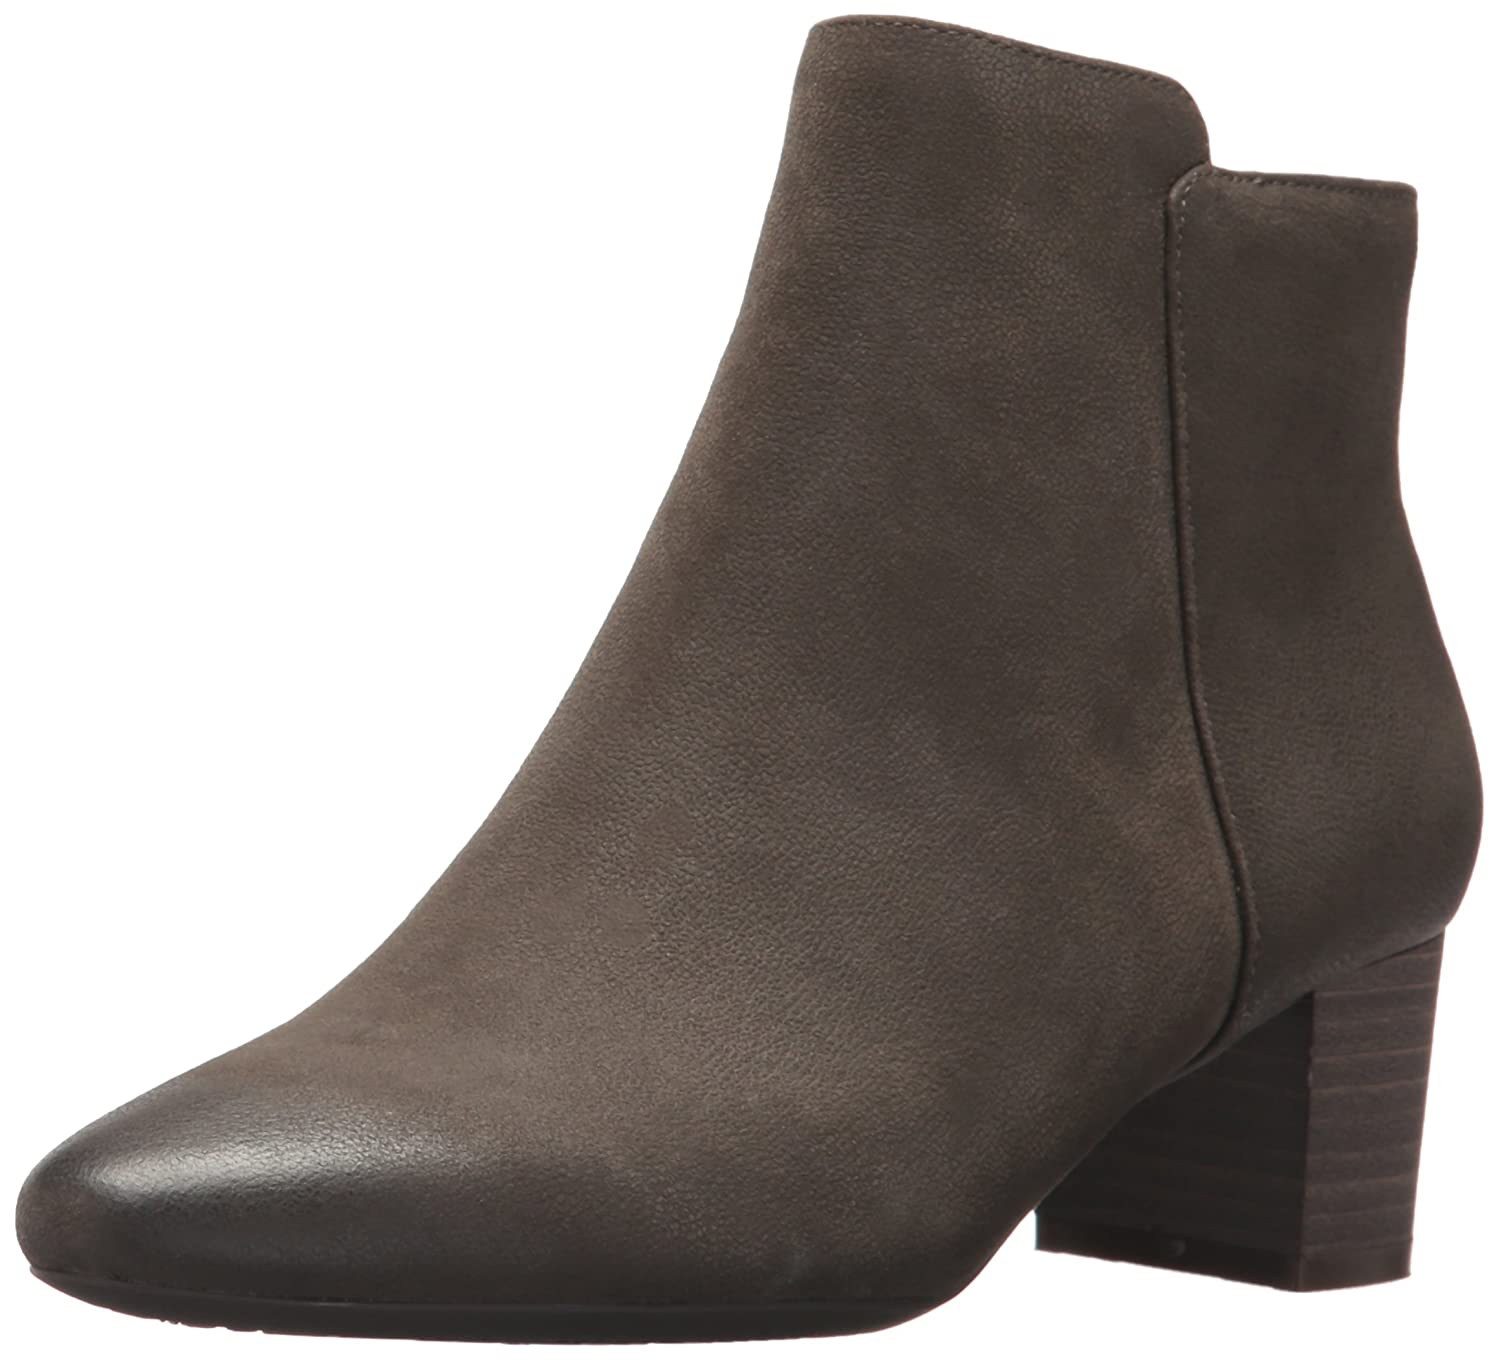 Rockport Women's Caden 2-Part Ankle Bootie B01MZHAUNH 9 B(M) US|Olive Grey Leather